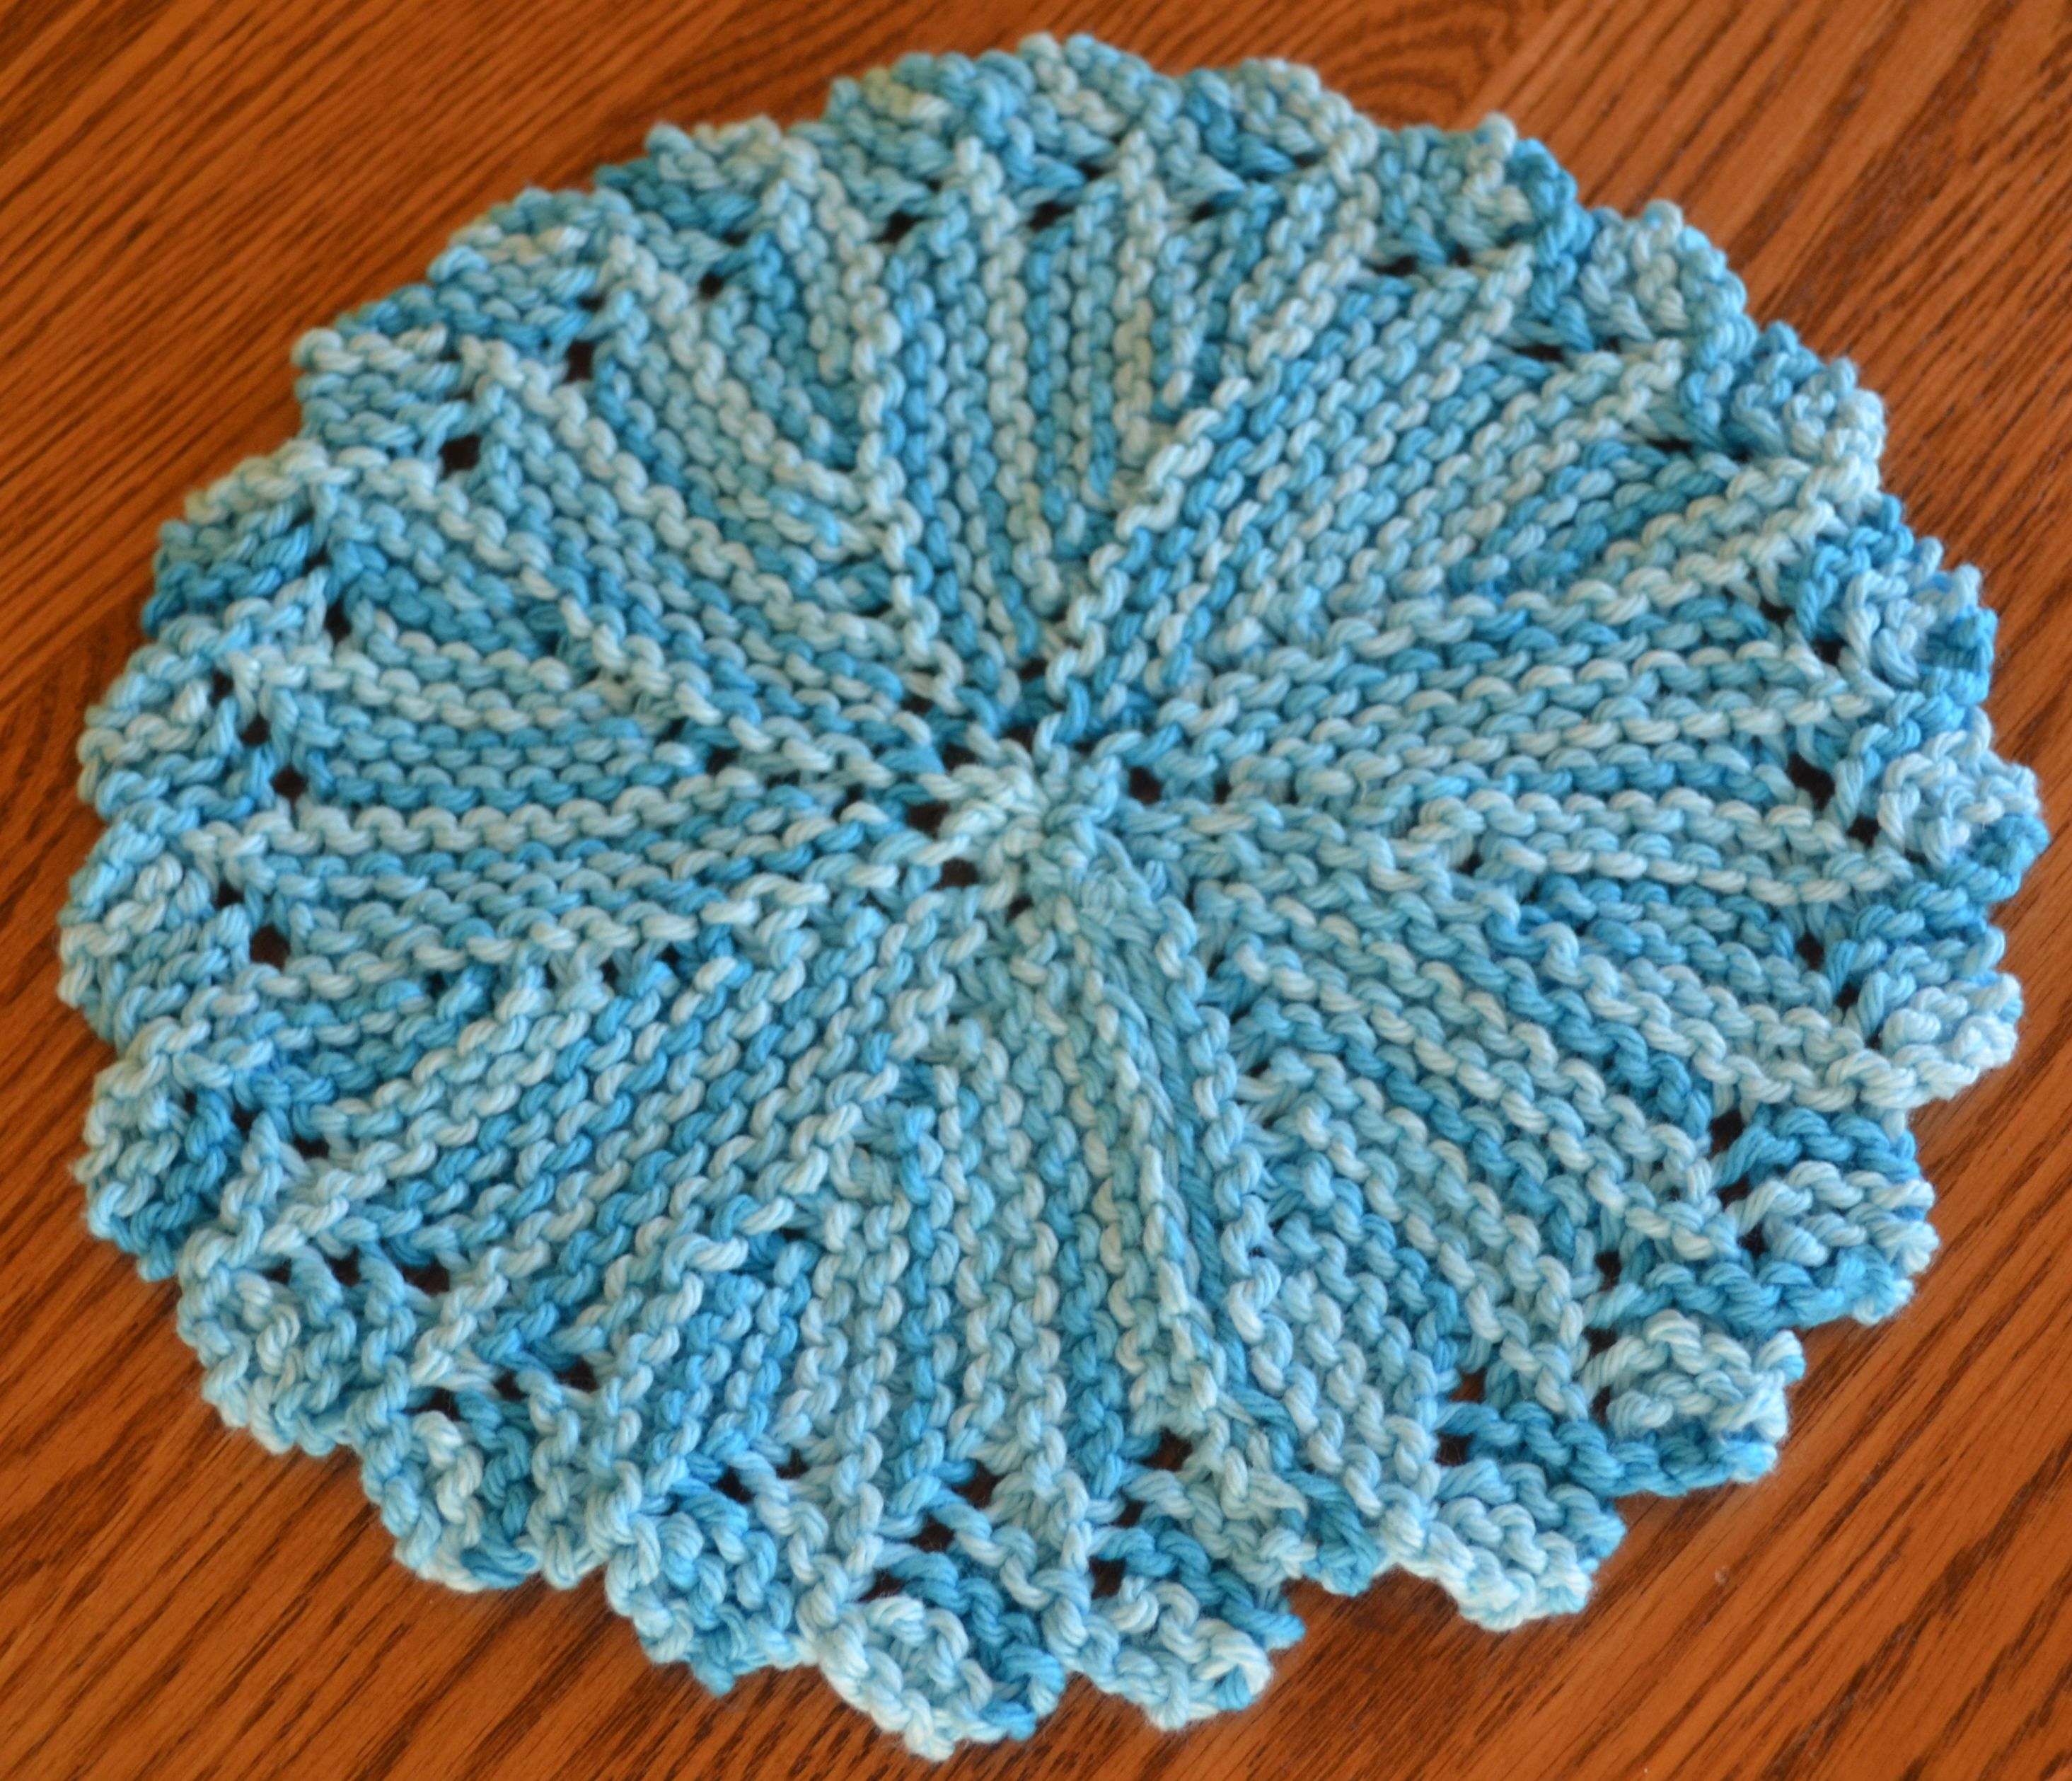 Practical knitting: dishcloths | Patterns, Knit crochet and Crochet